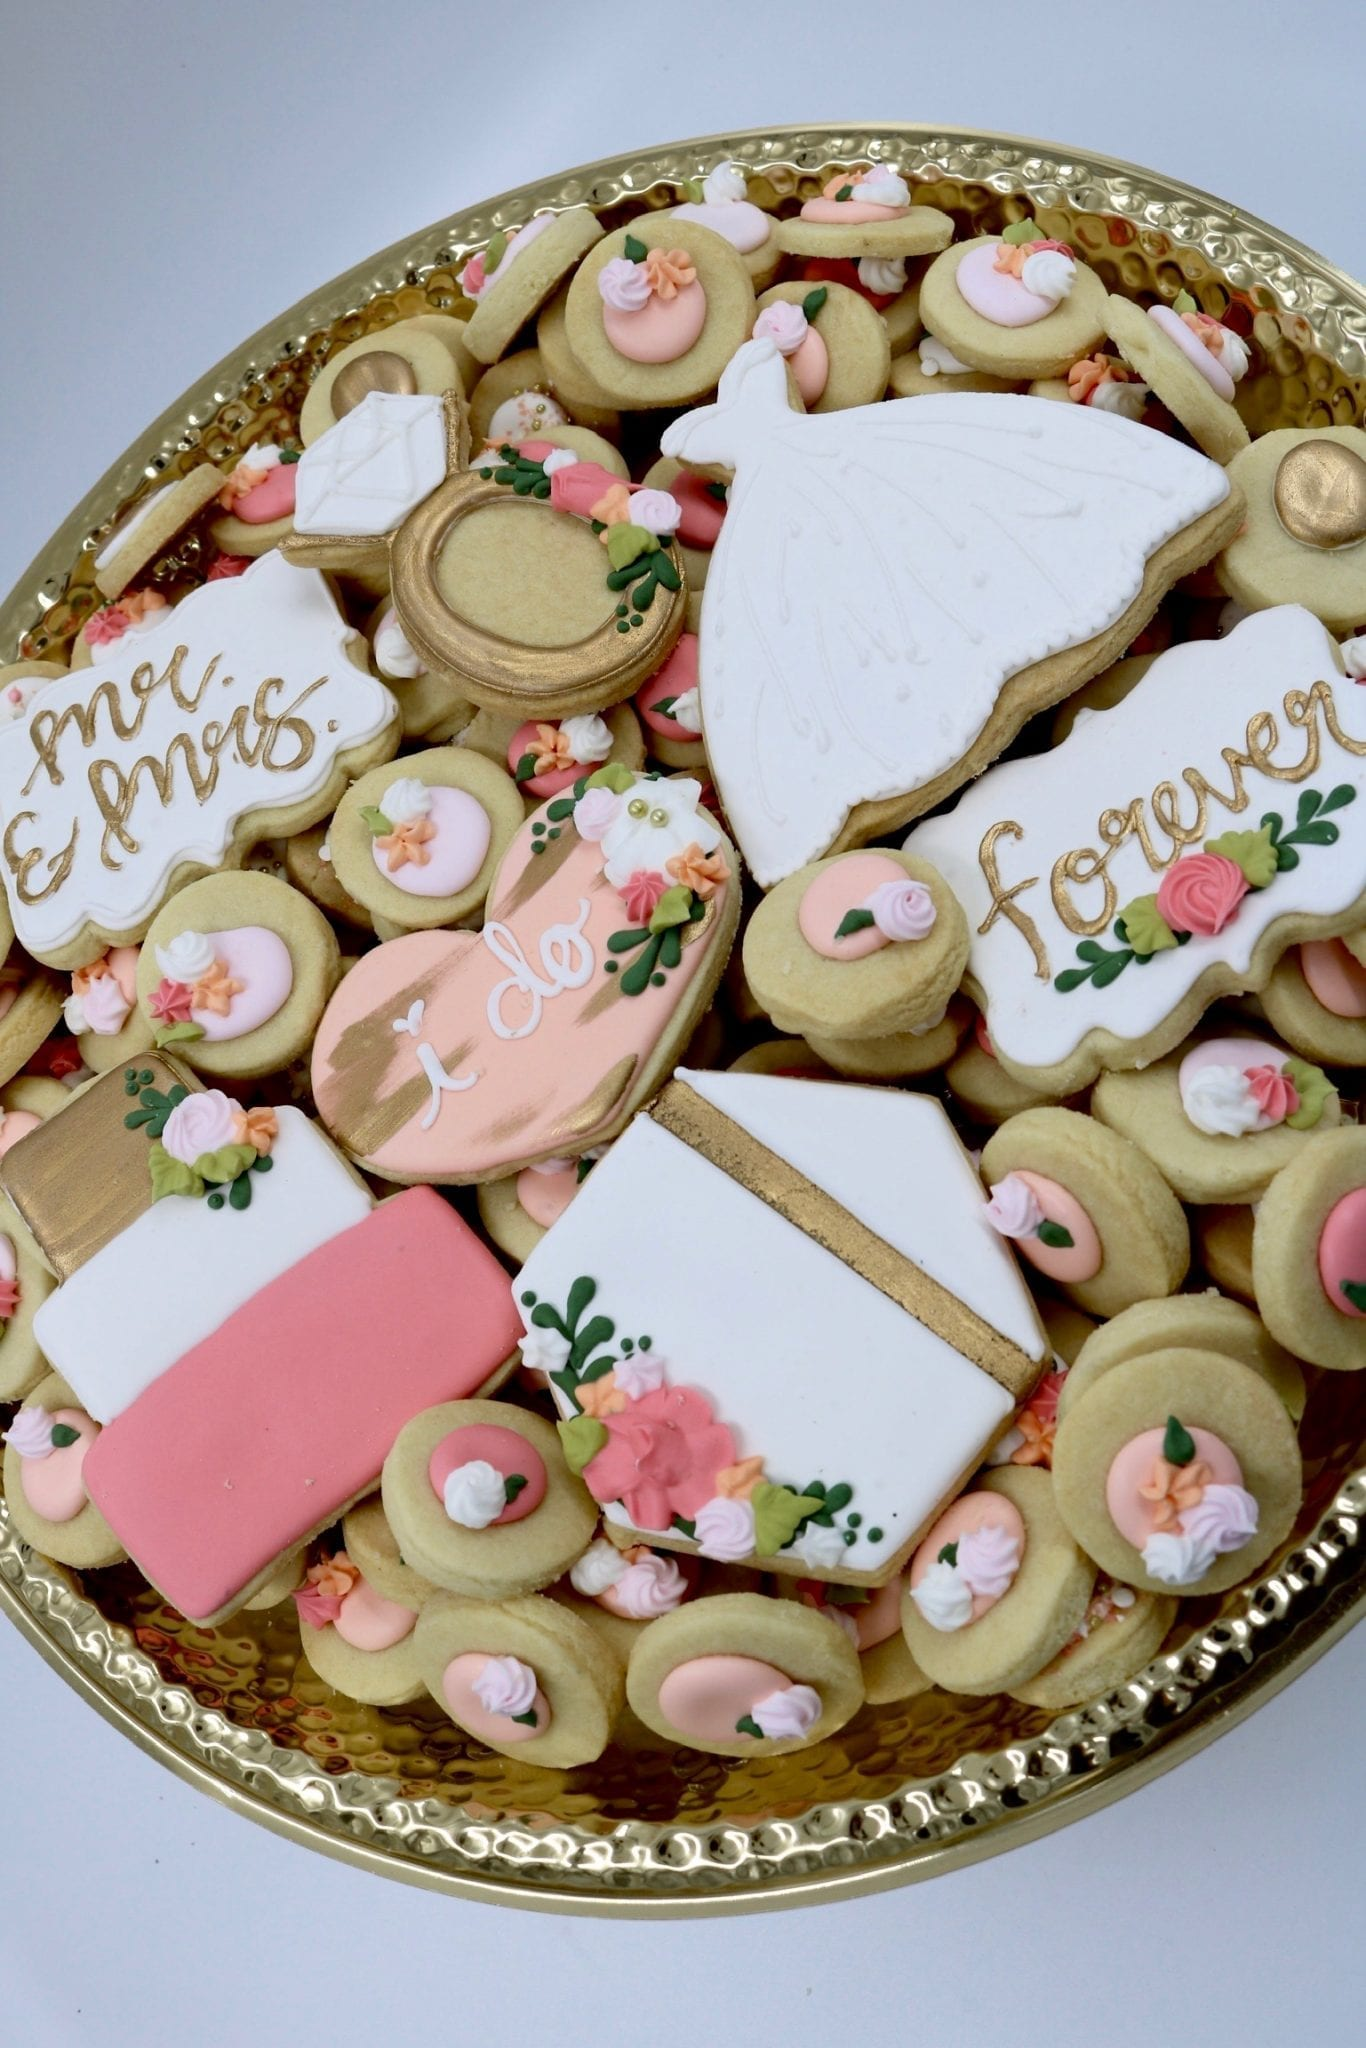 Wedding Shower Teas Cookies | 3 Sweet Girls Cakery